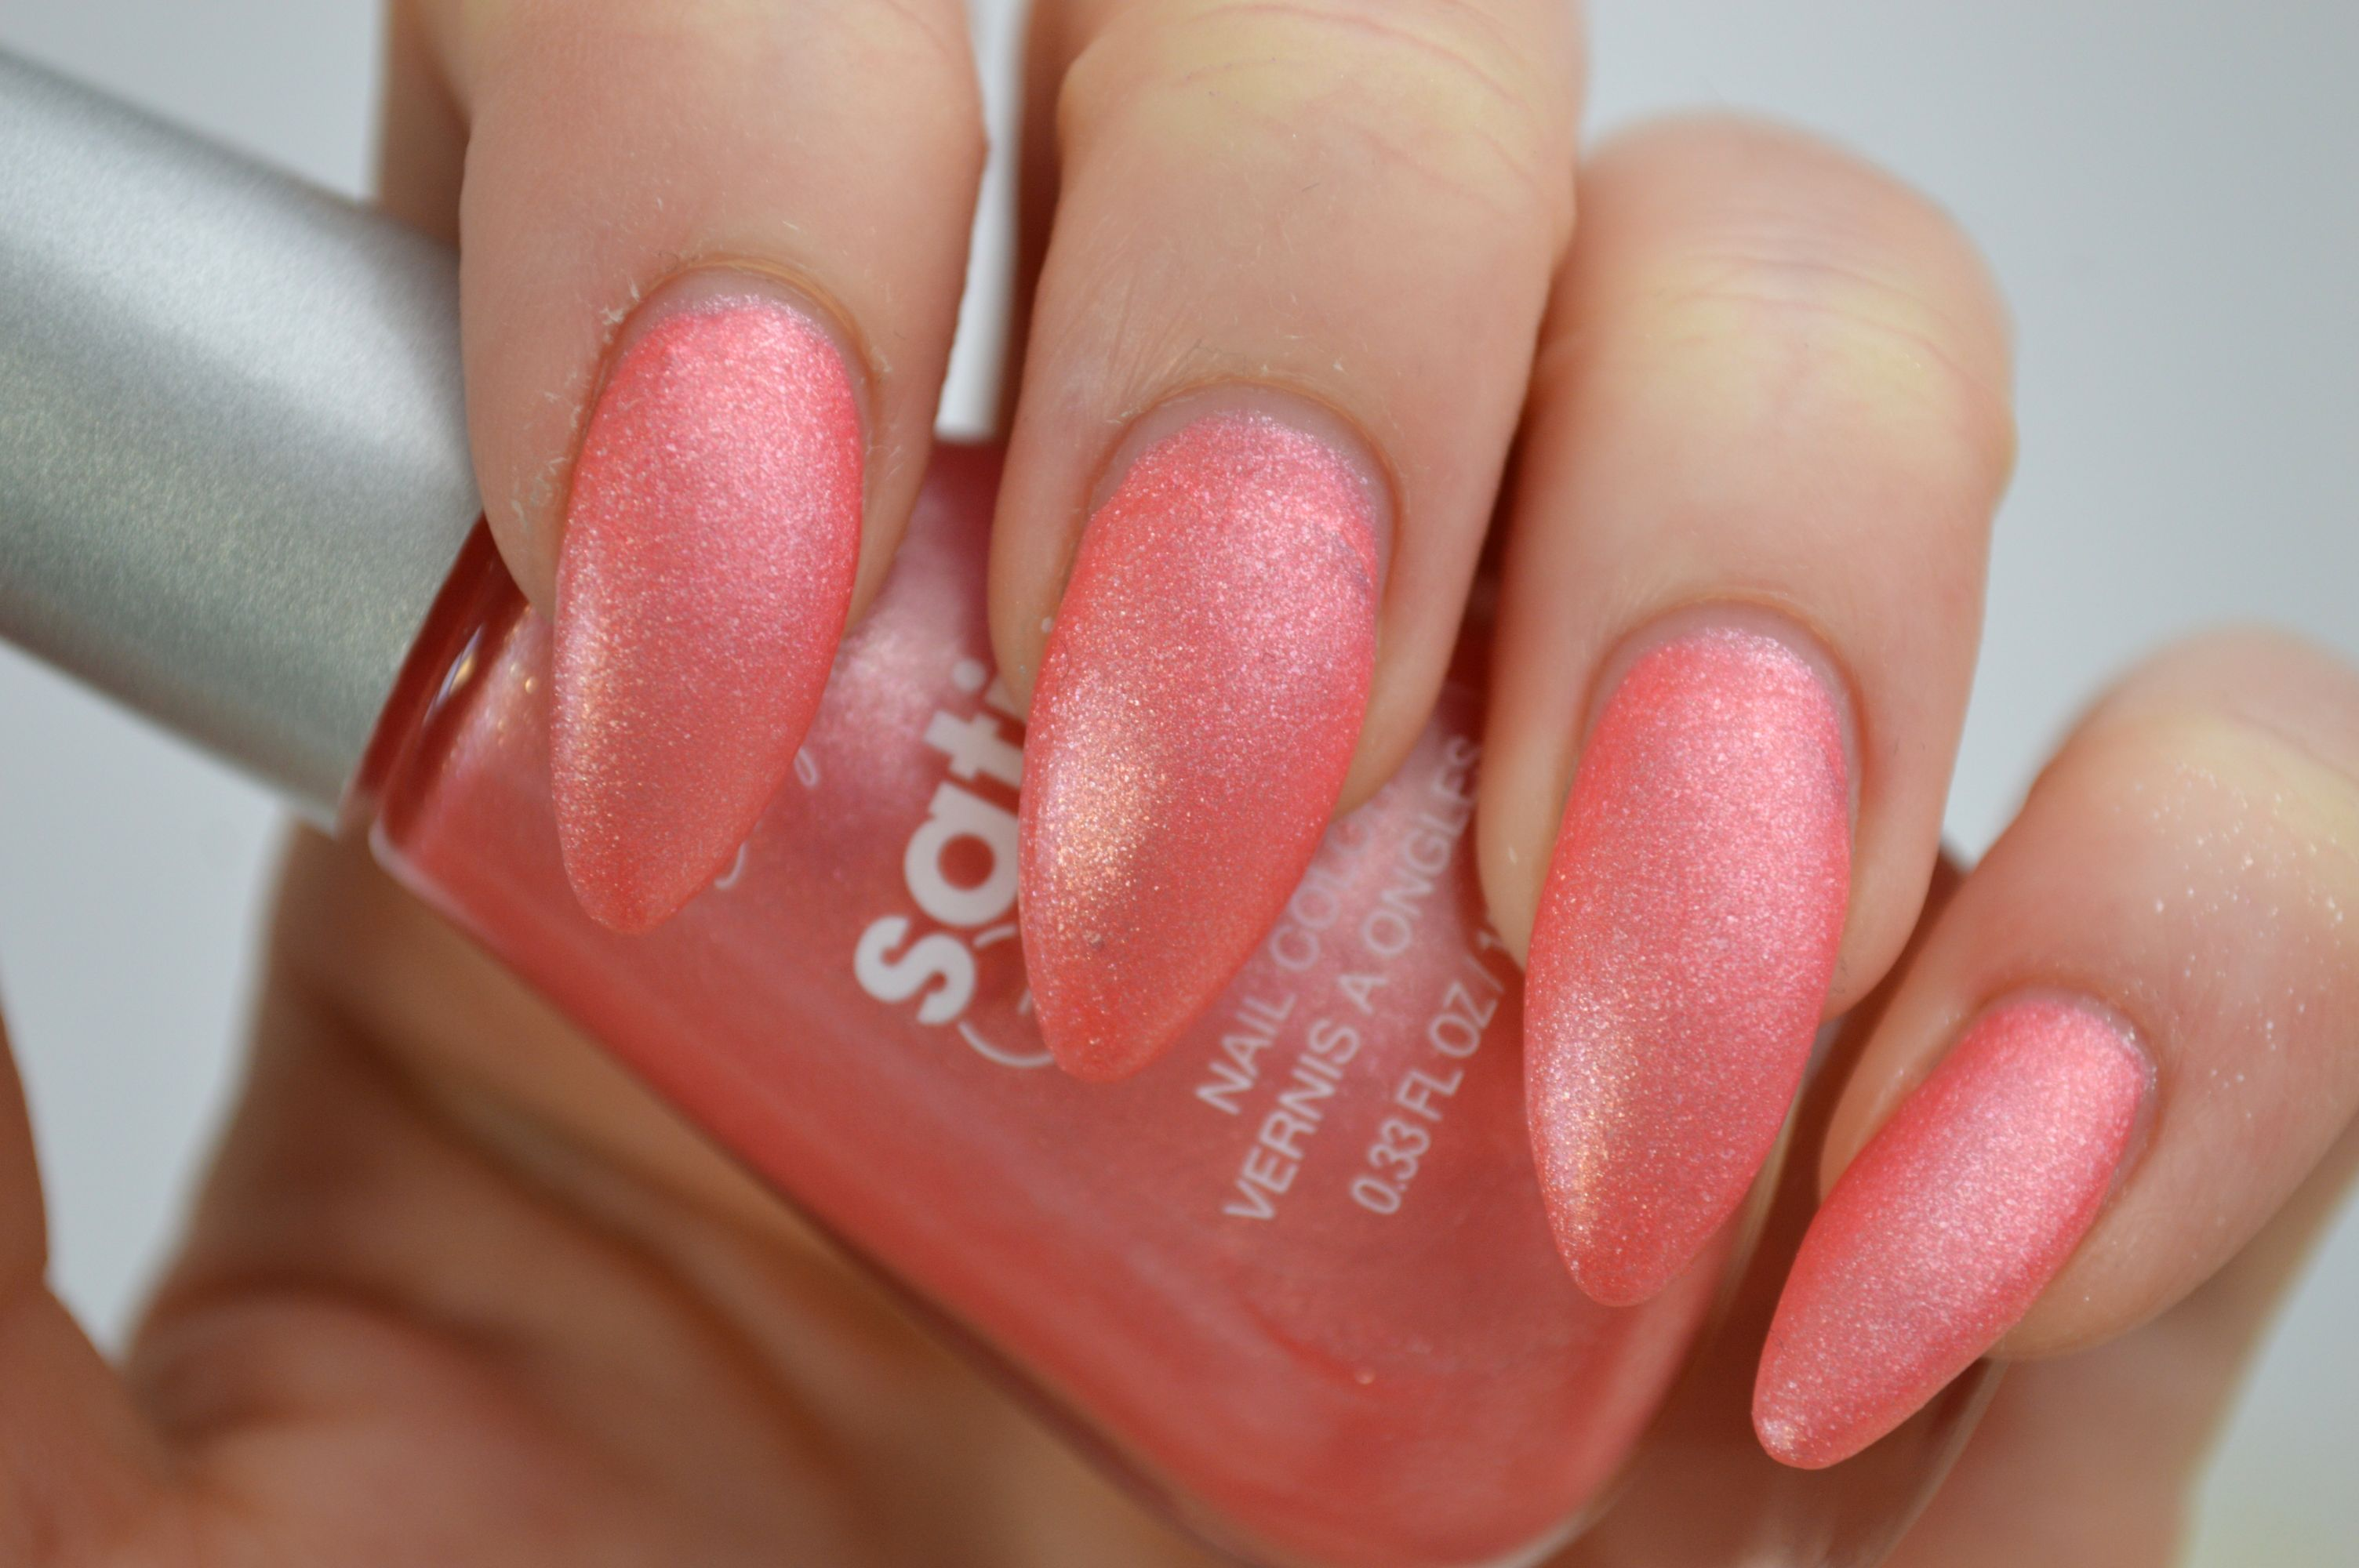 Sally_Hansen_Satin_Glam_Chic_Pink_Review